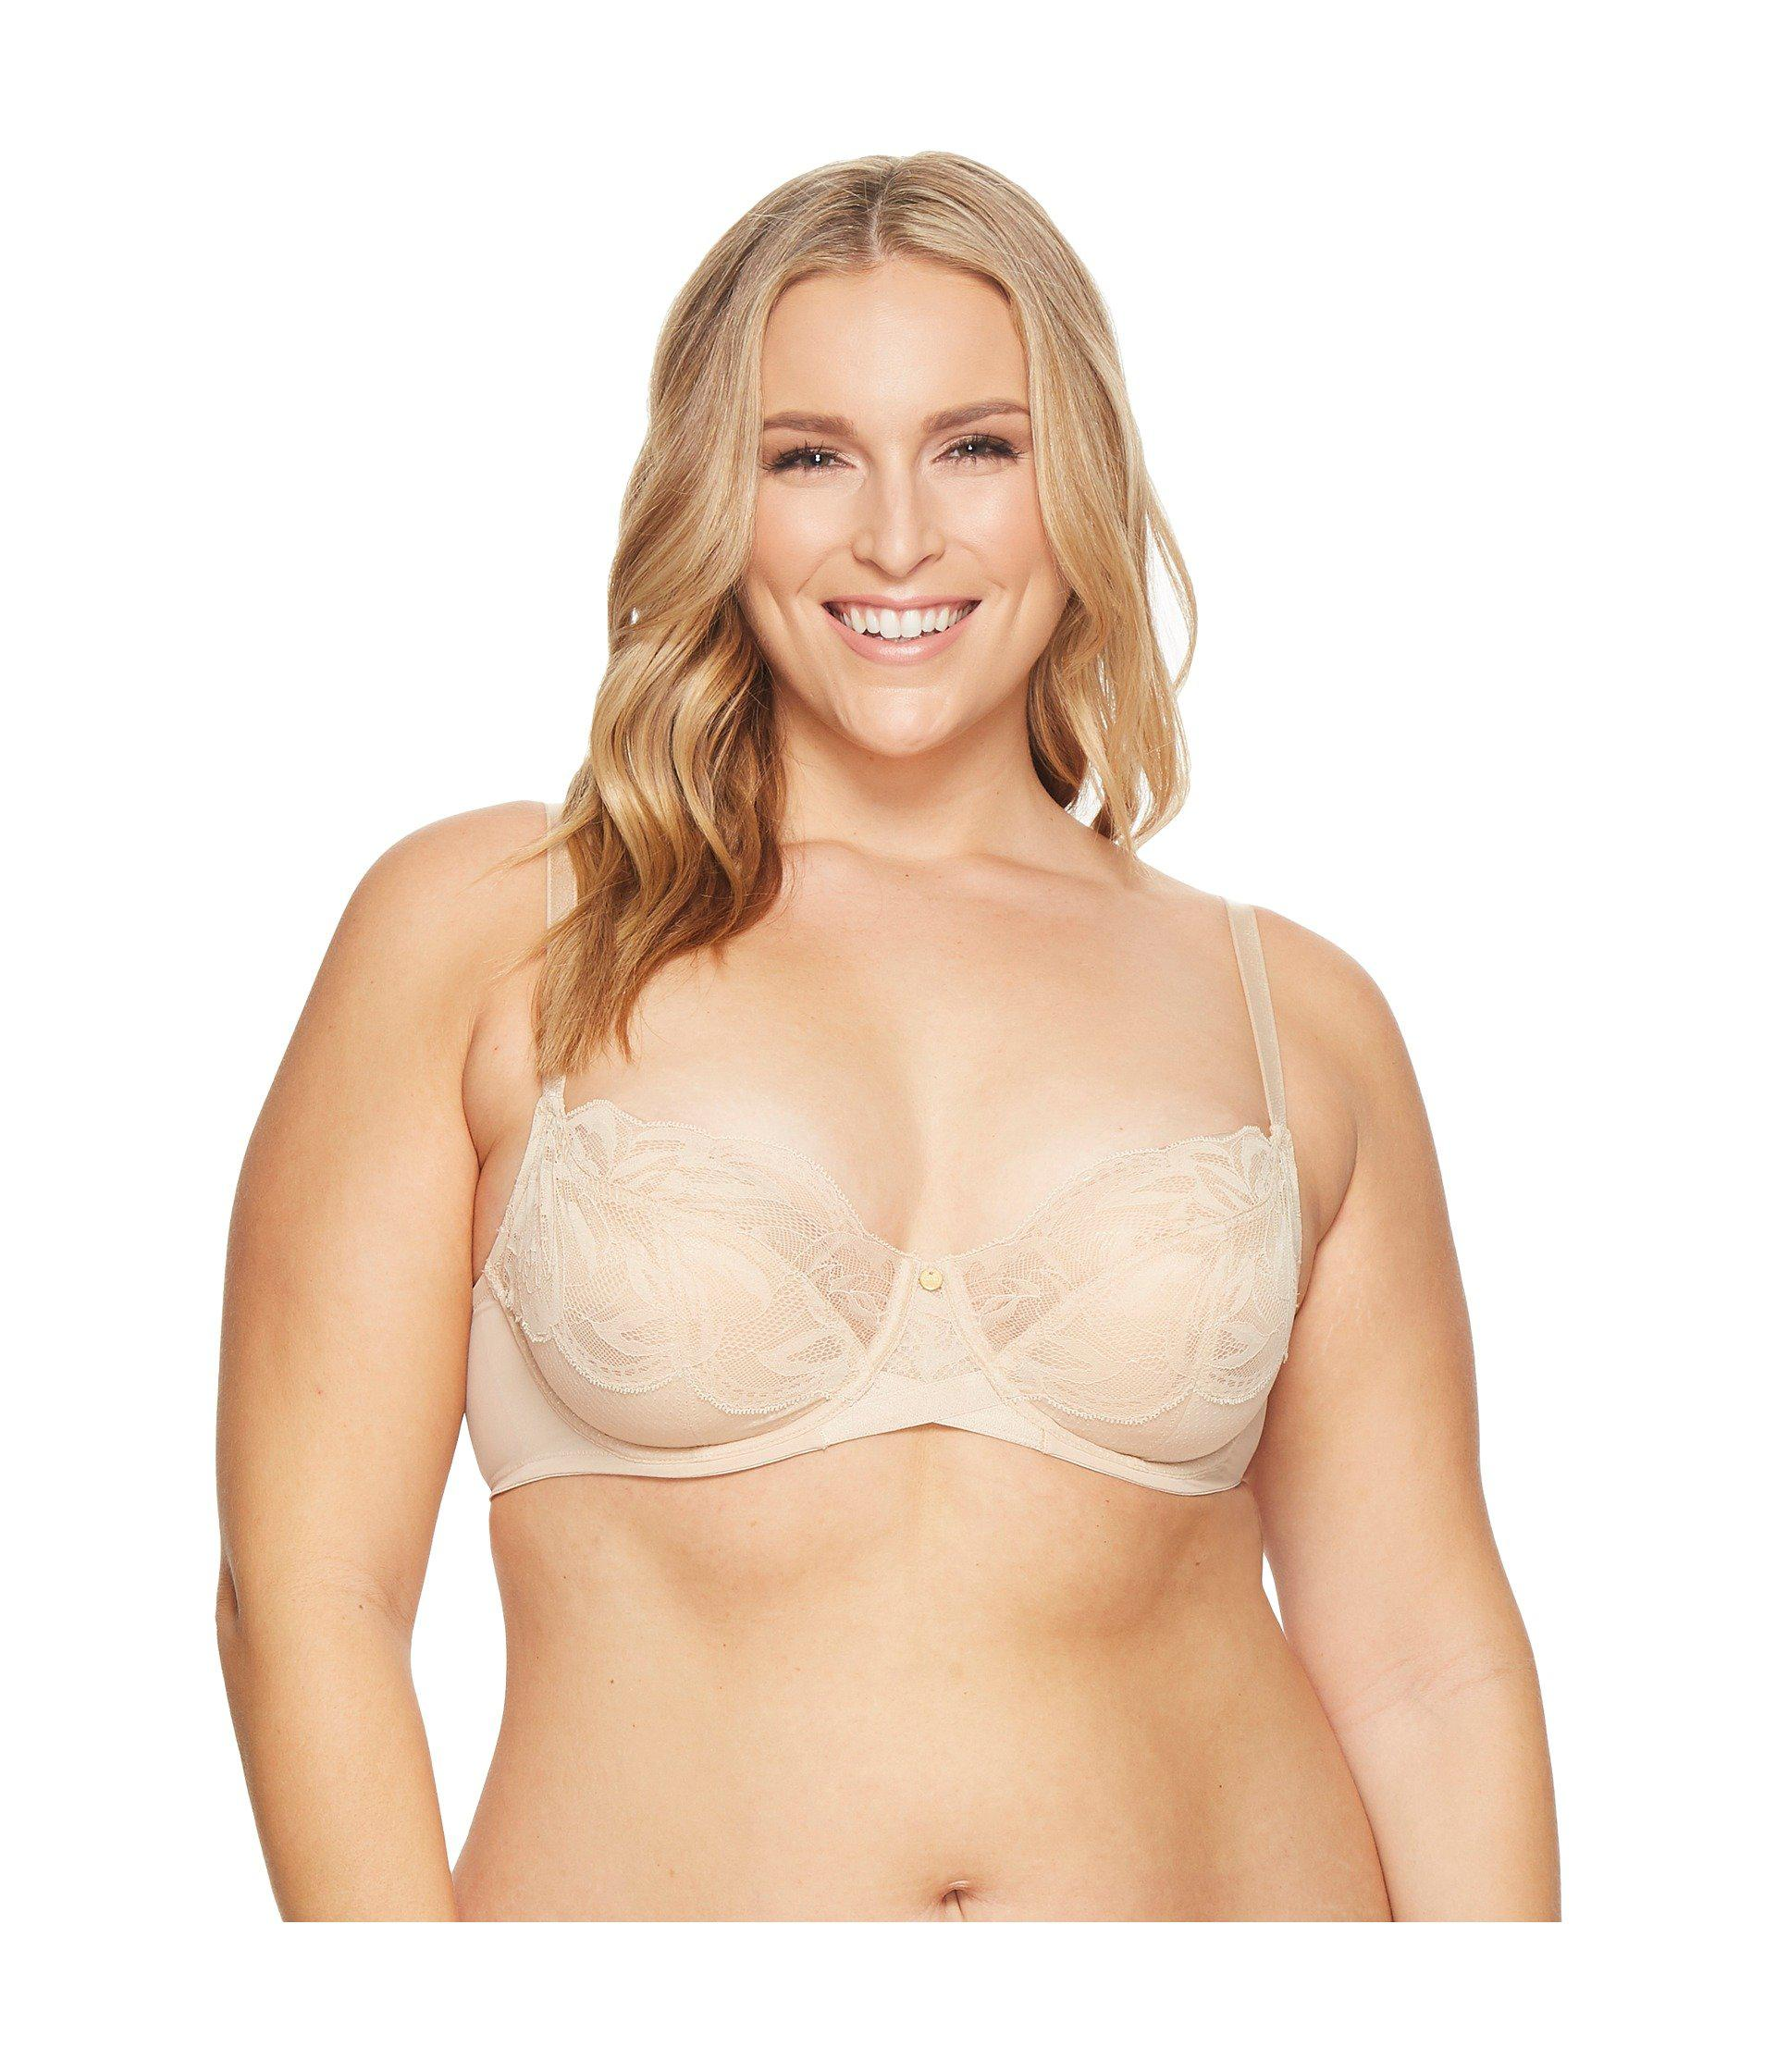 32a8c1f100489 Lyst - Natori Bouquet Full Figure Underwire Bra in Natural - Save 52%